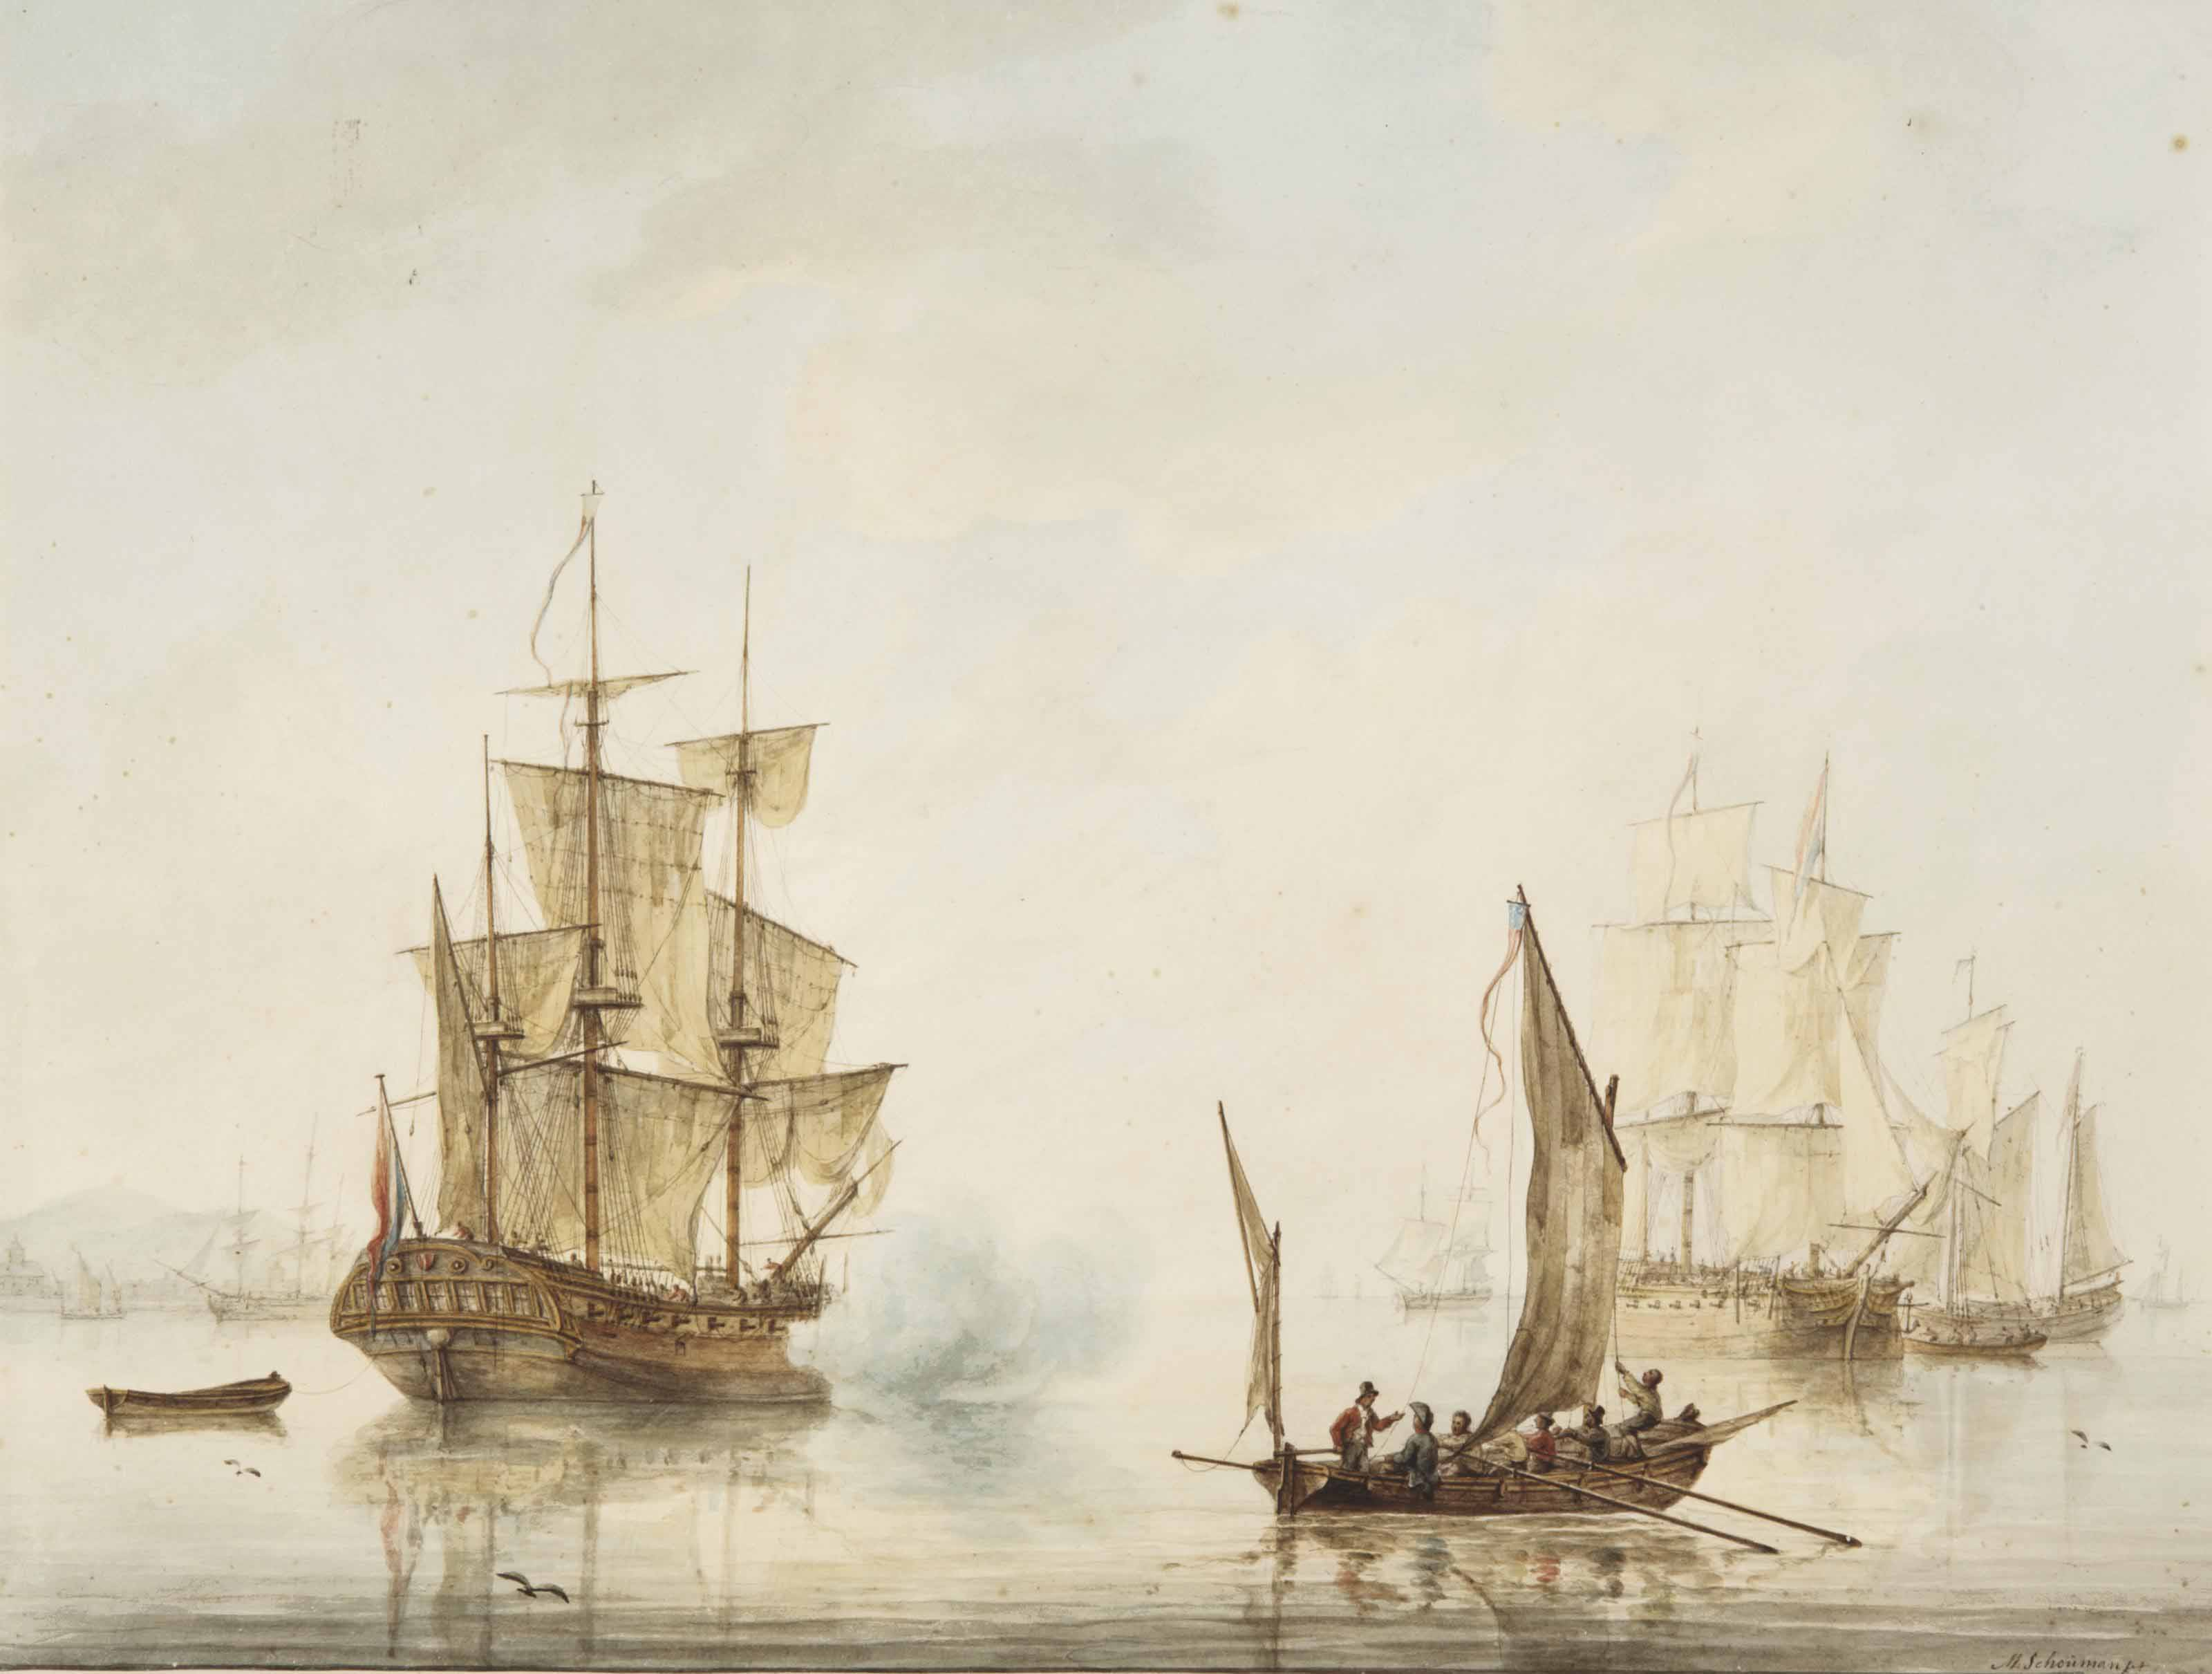 Ships at anchor in an estuary, one firing a salute, an American sloop nearby